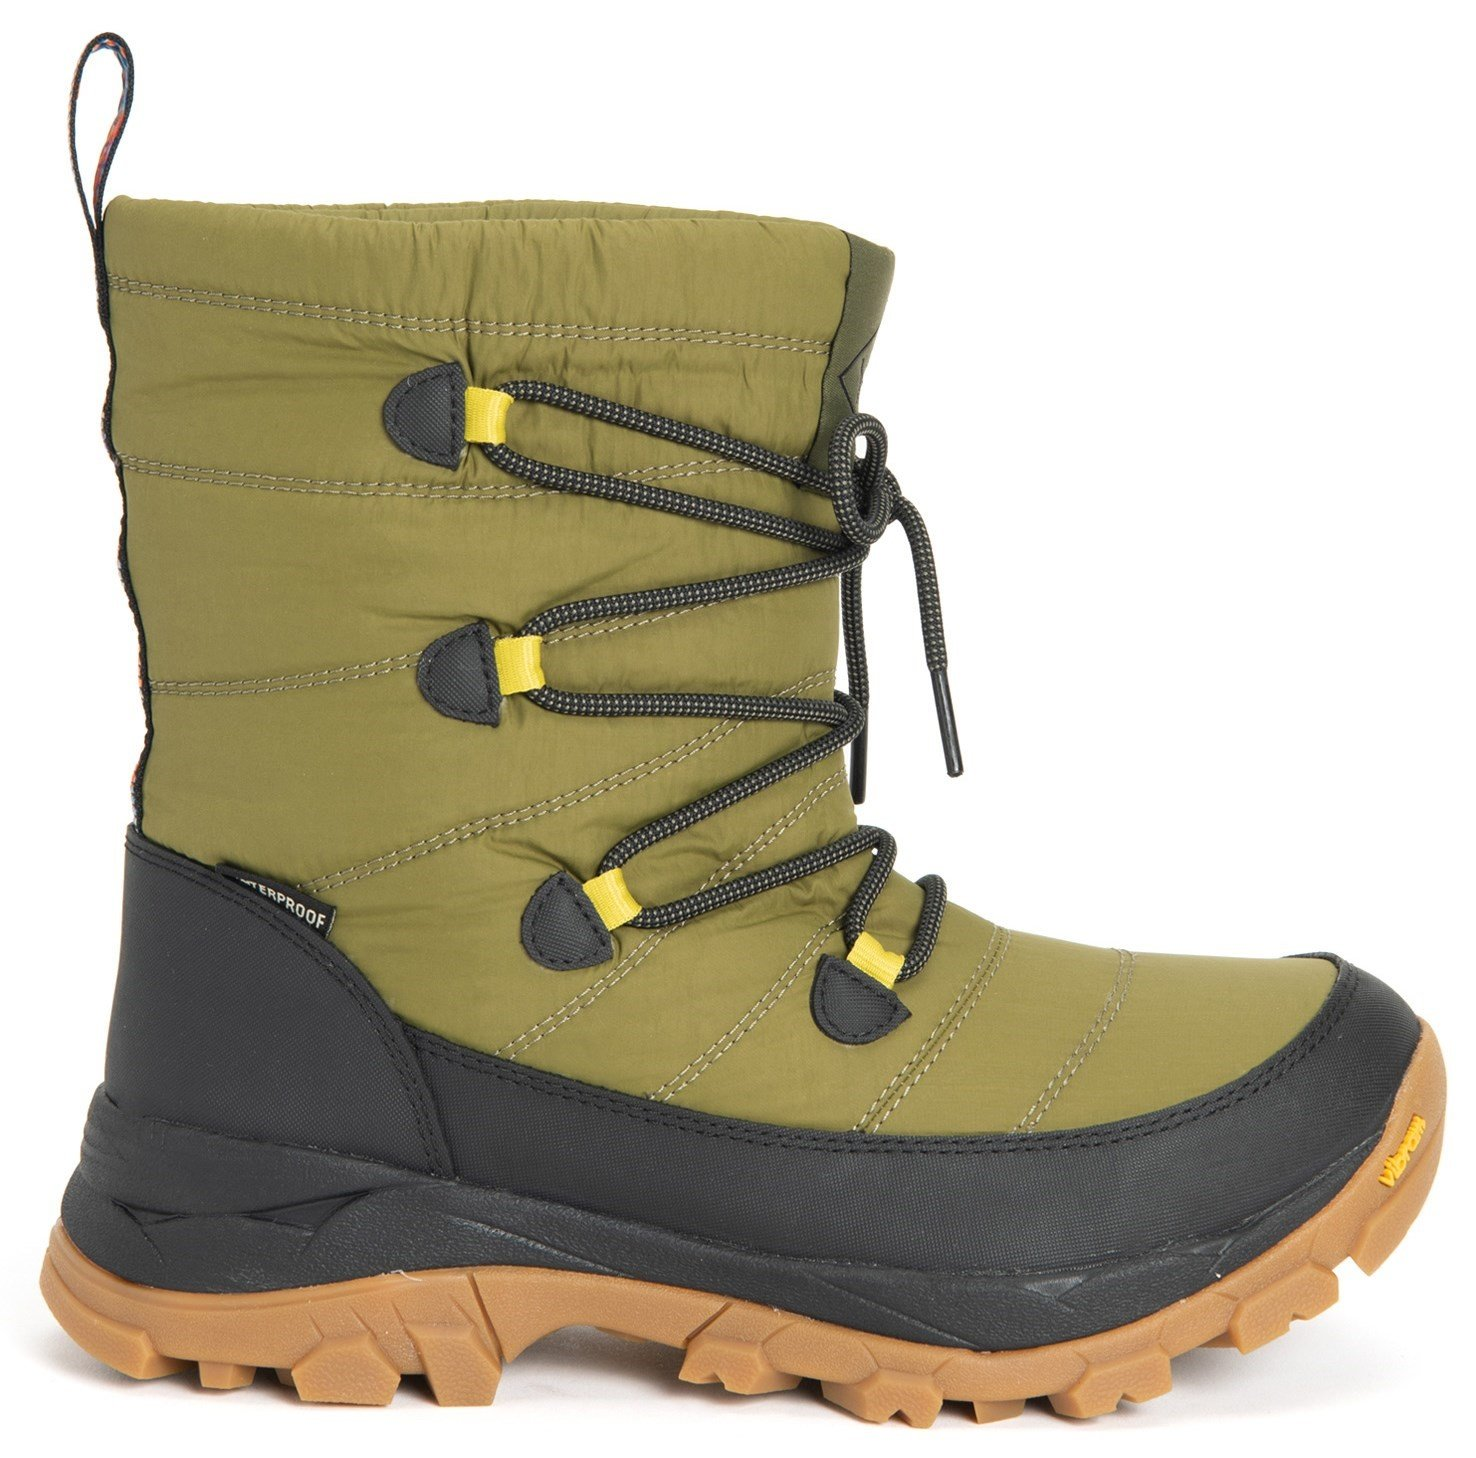 Muck Boots Unisex Arctic Ice Nomadic Vibram Boots Various Colours 30985 - Moss 3